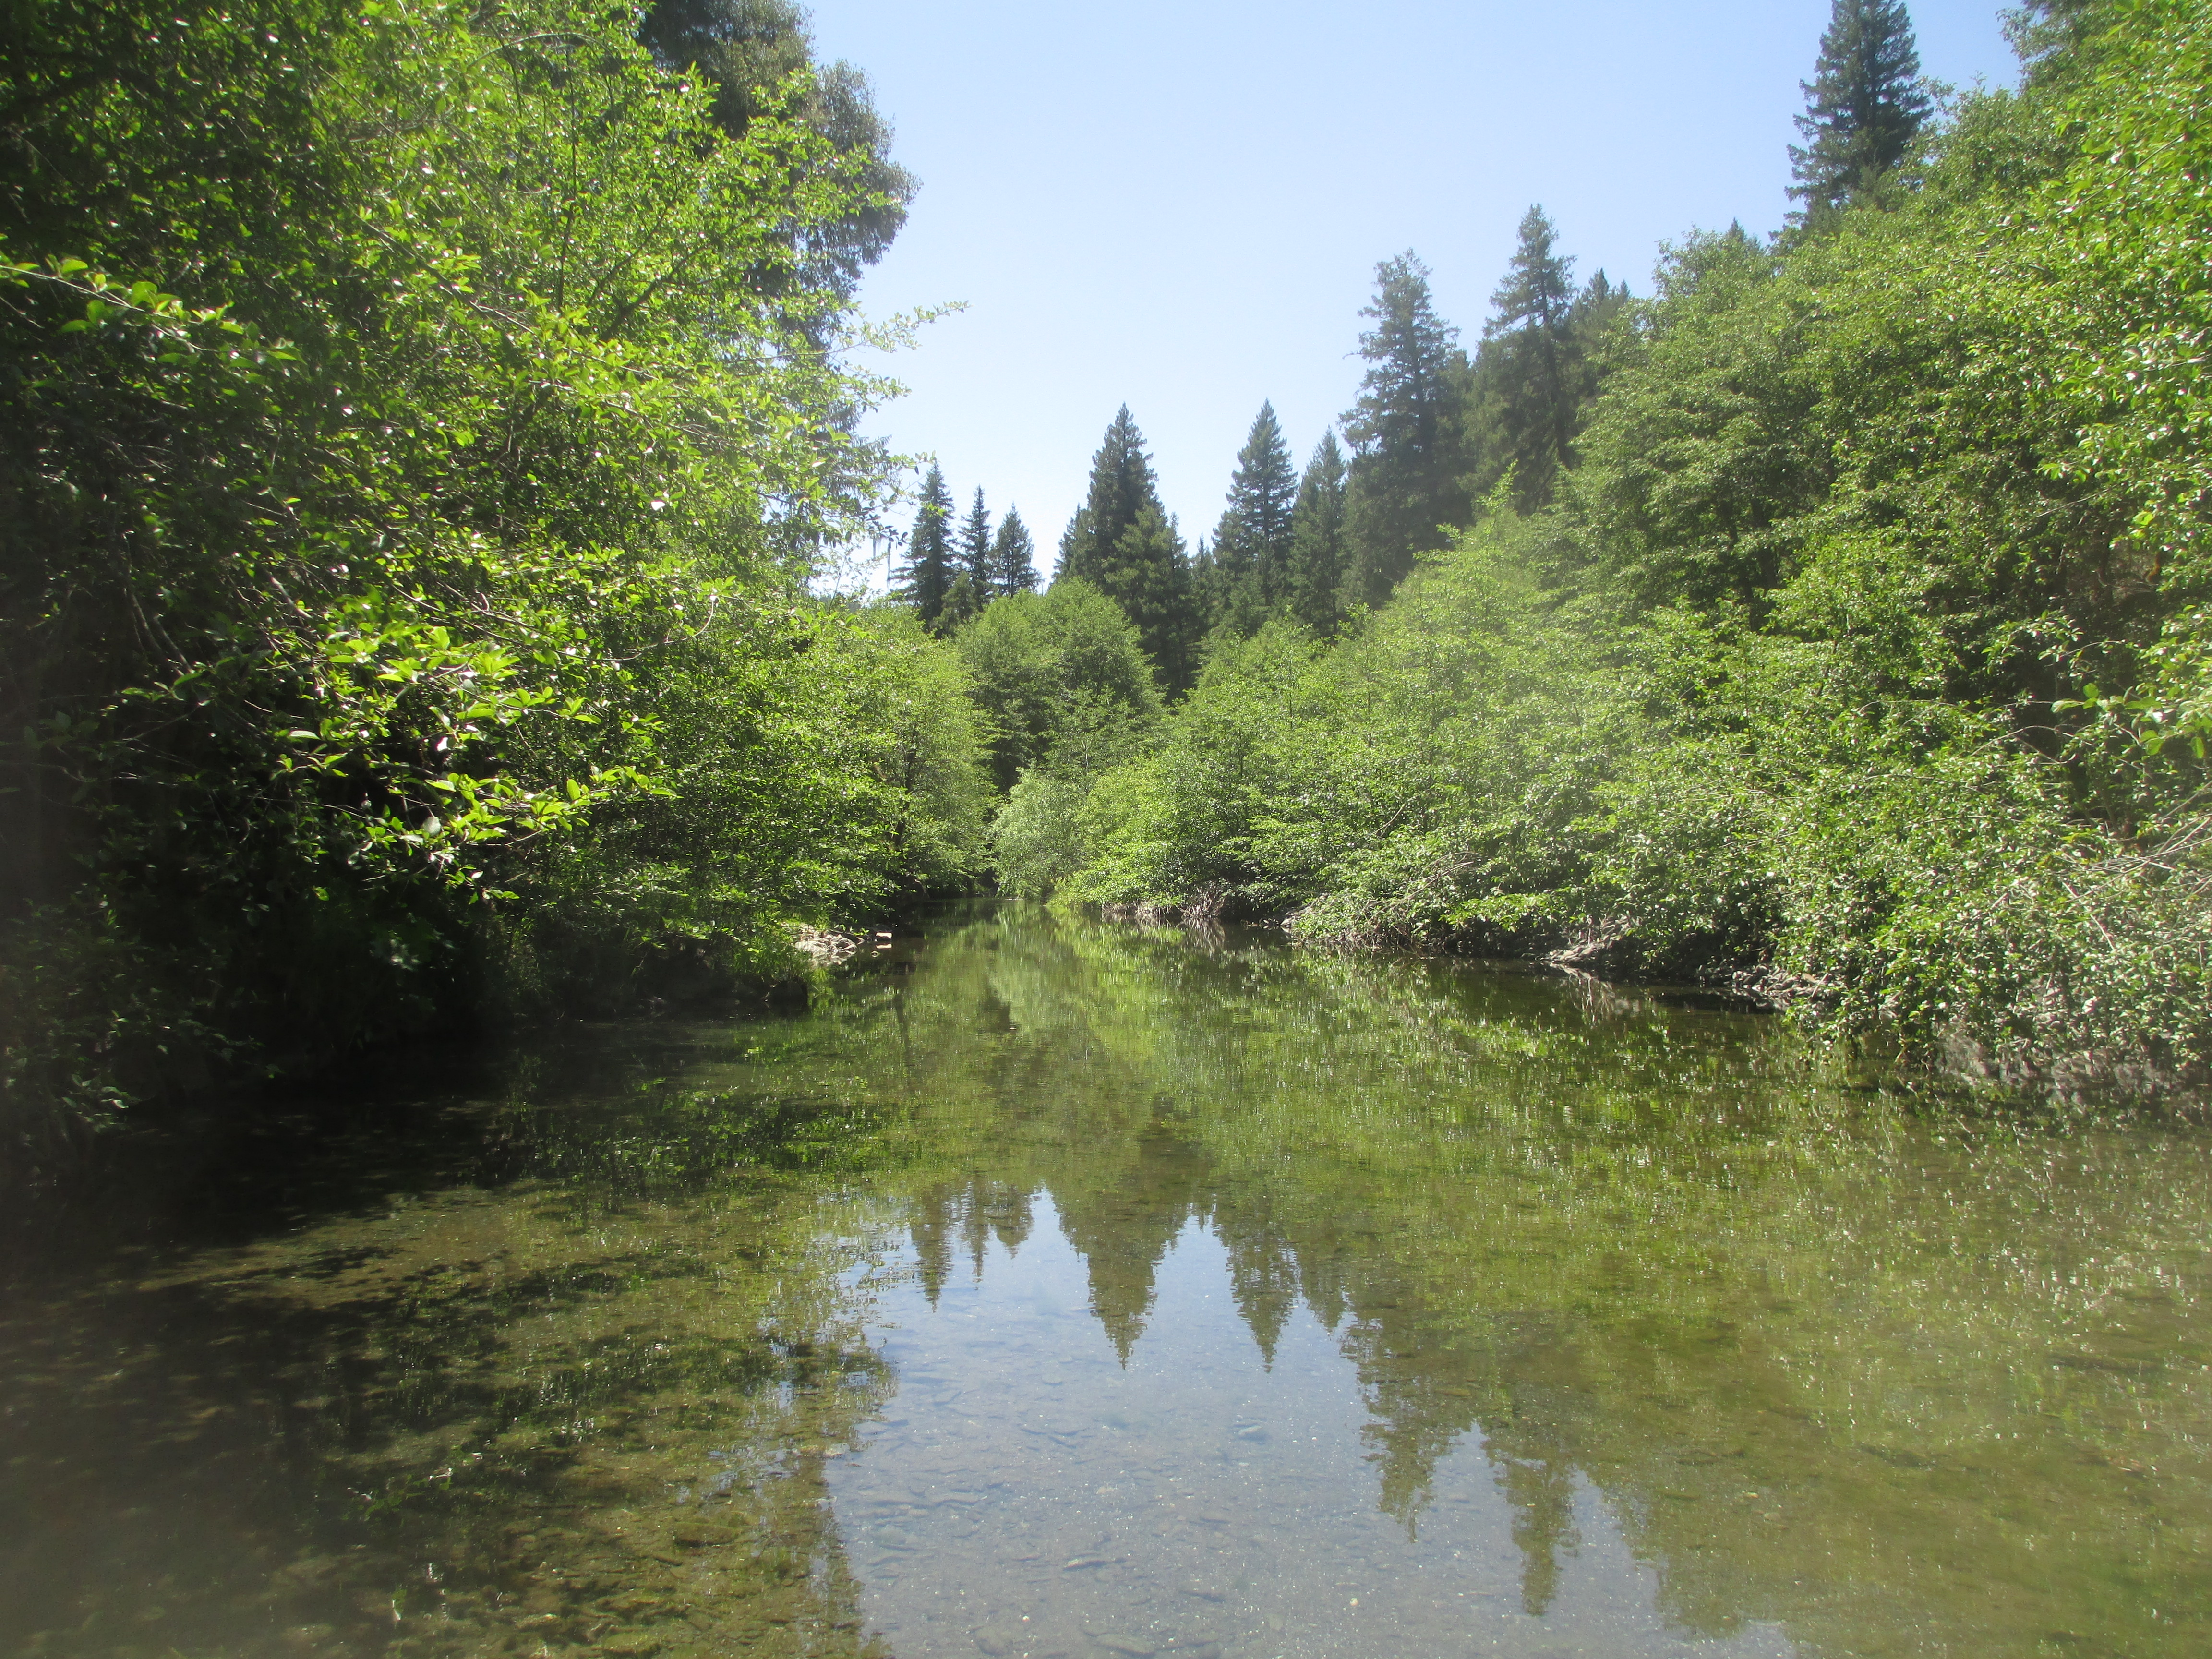 thirteen pictures of camping in humboldt county | redneck romance writer